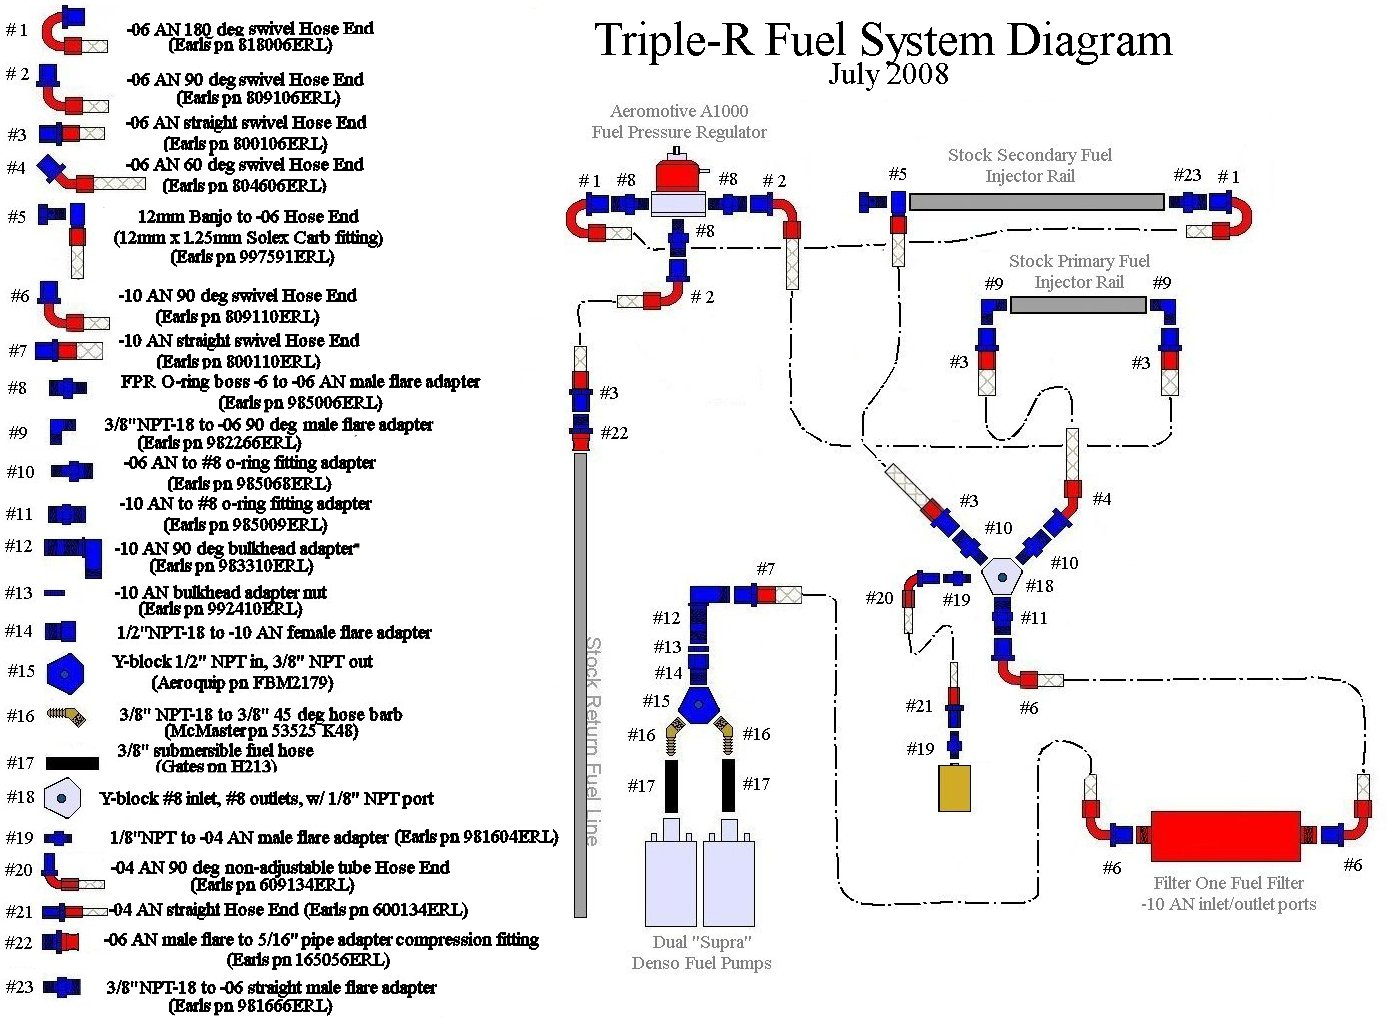 Fuel Line Routing With Twin Pumps - Rx7club Com